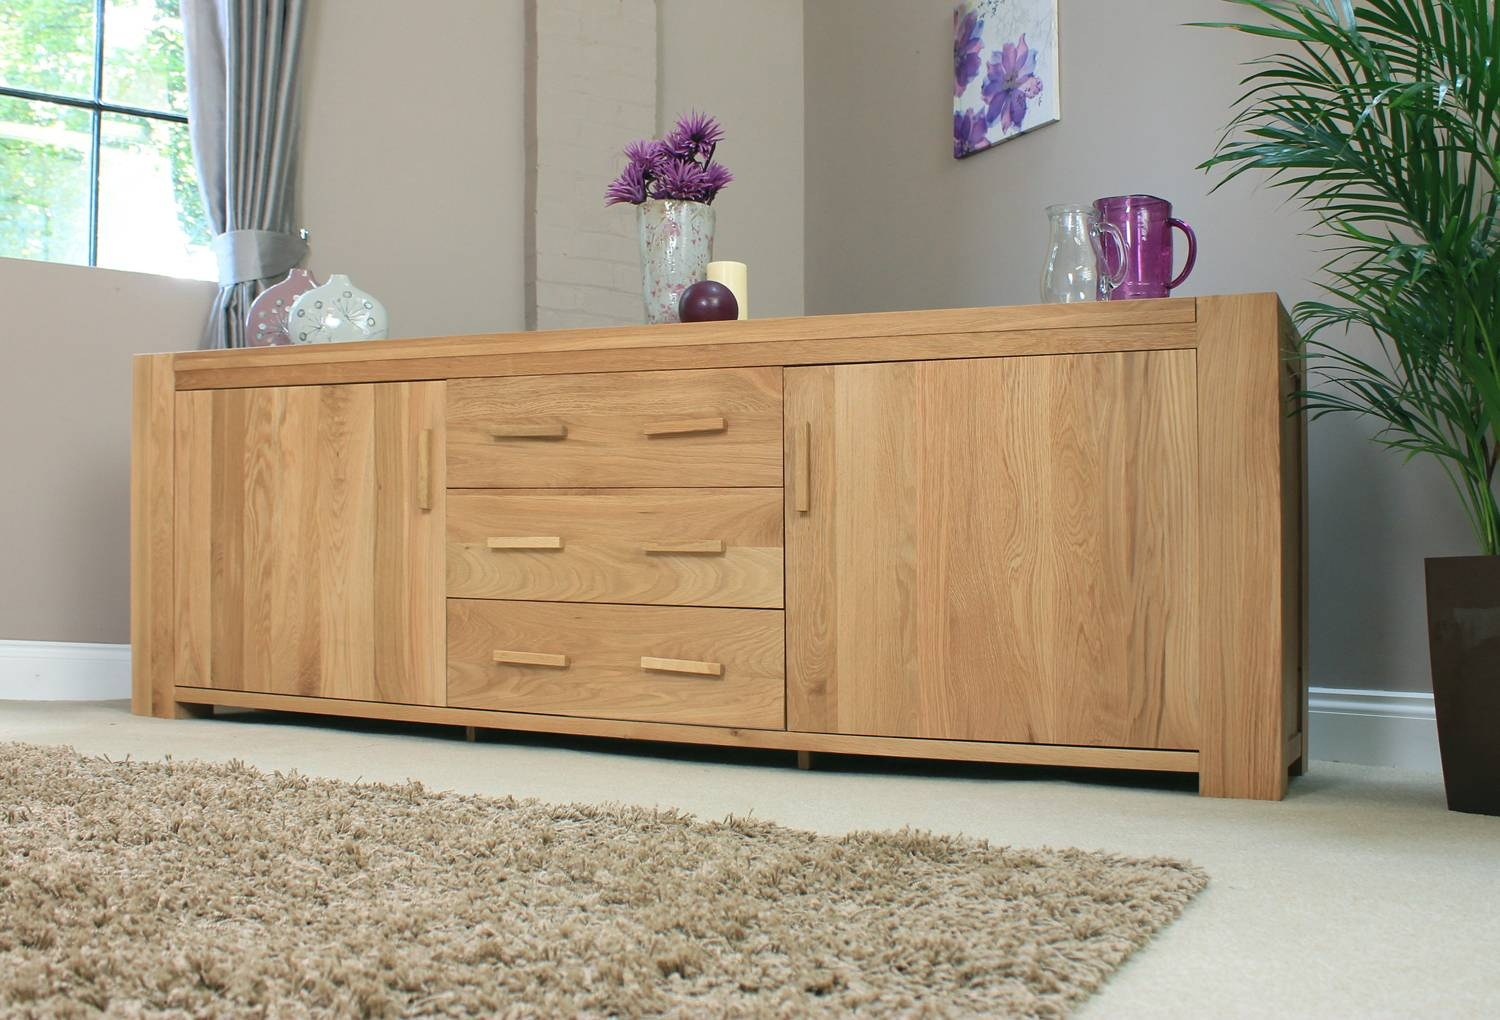 Oxf Direct, The Luxury Furniture Store – Aston Oak Range Throughout 2017 Large Oak Sideboard (View 15 of 15)